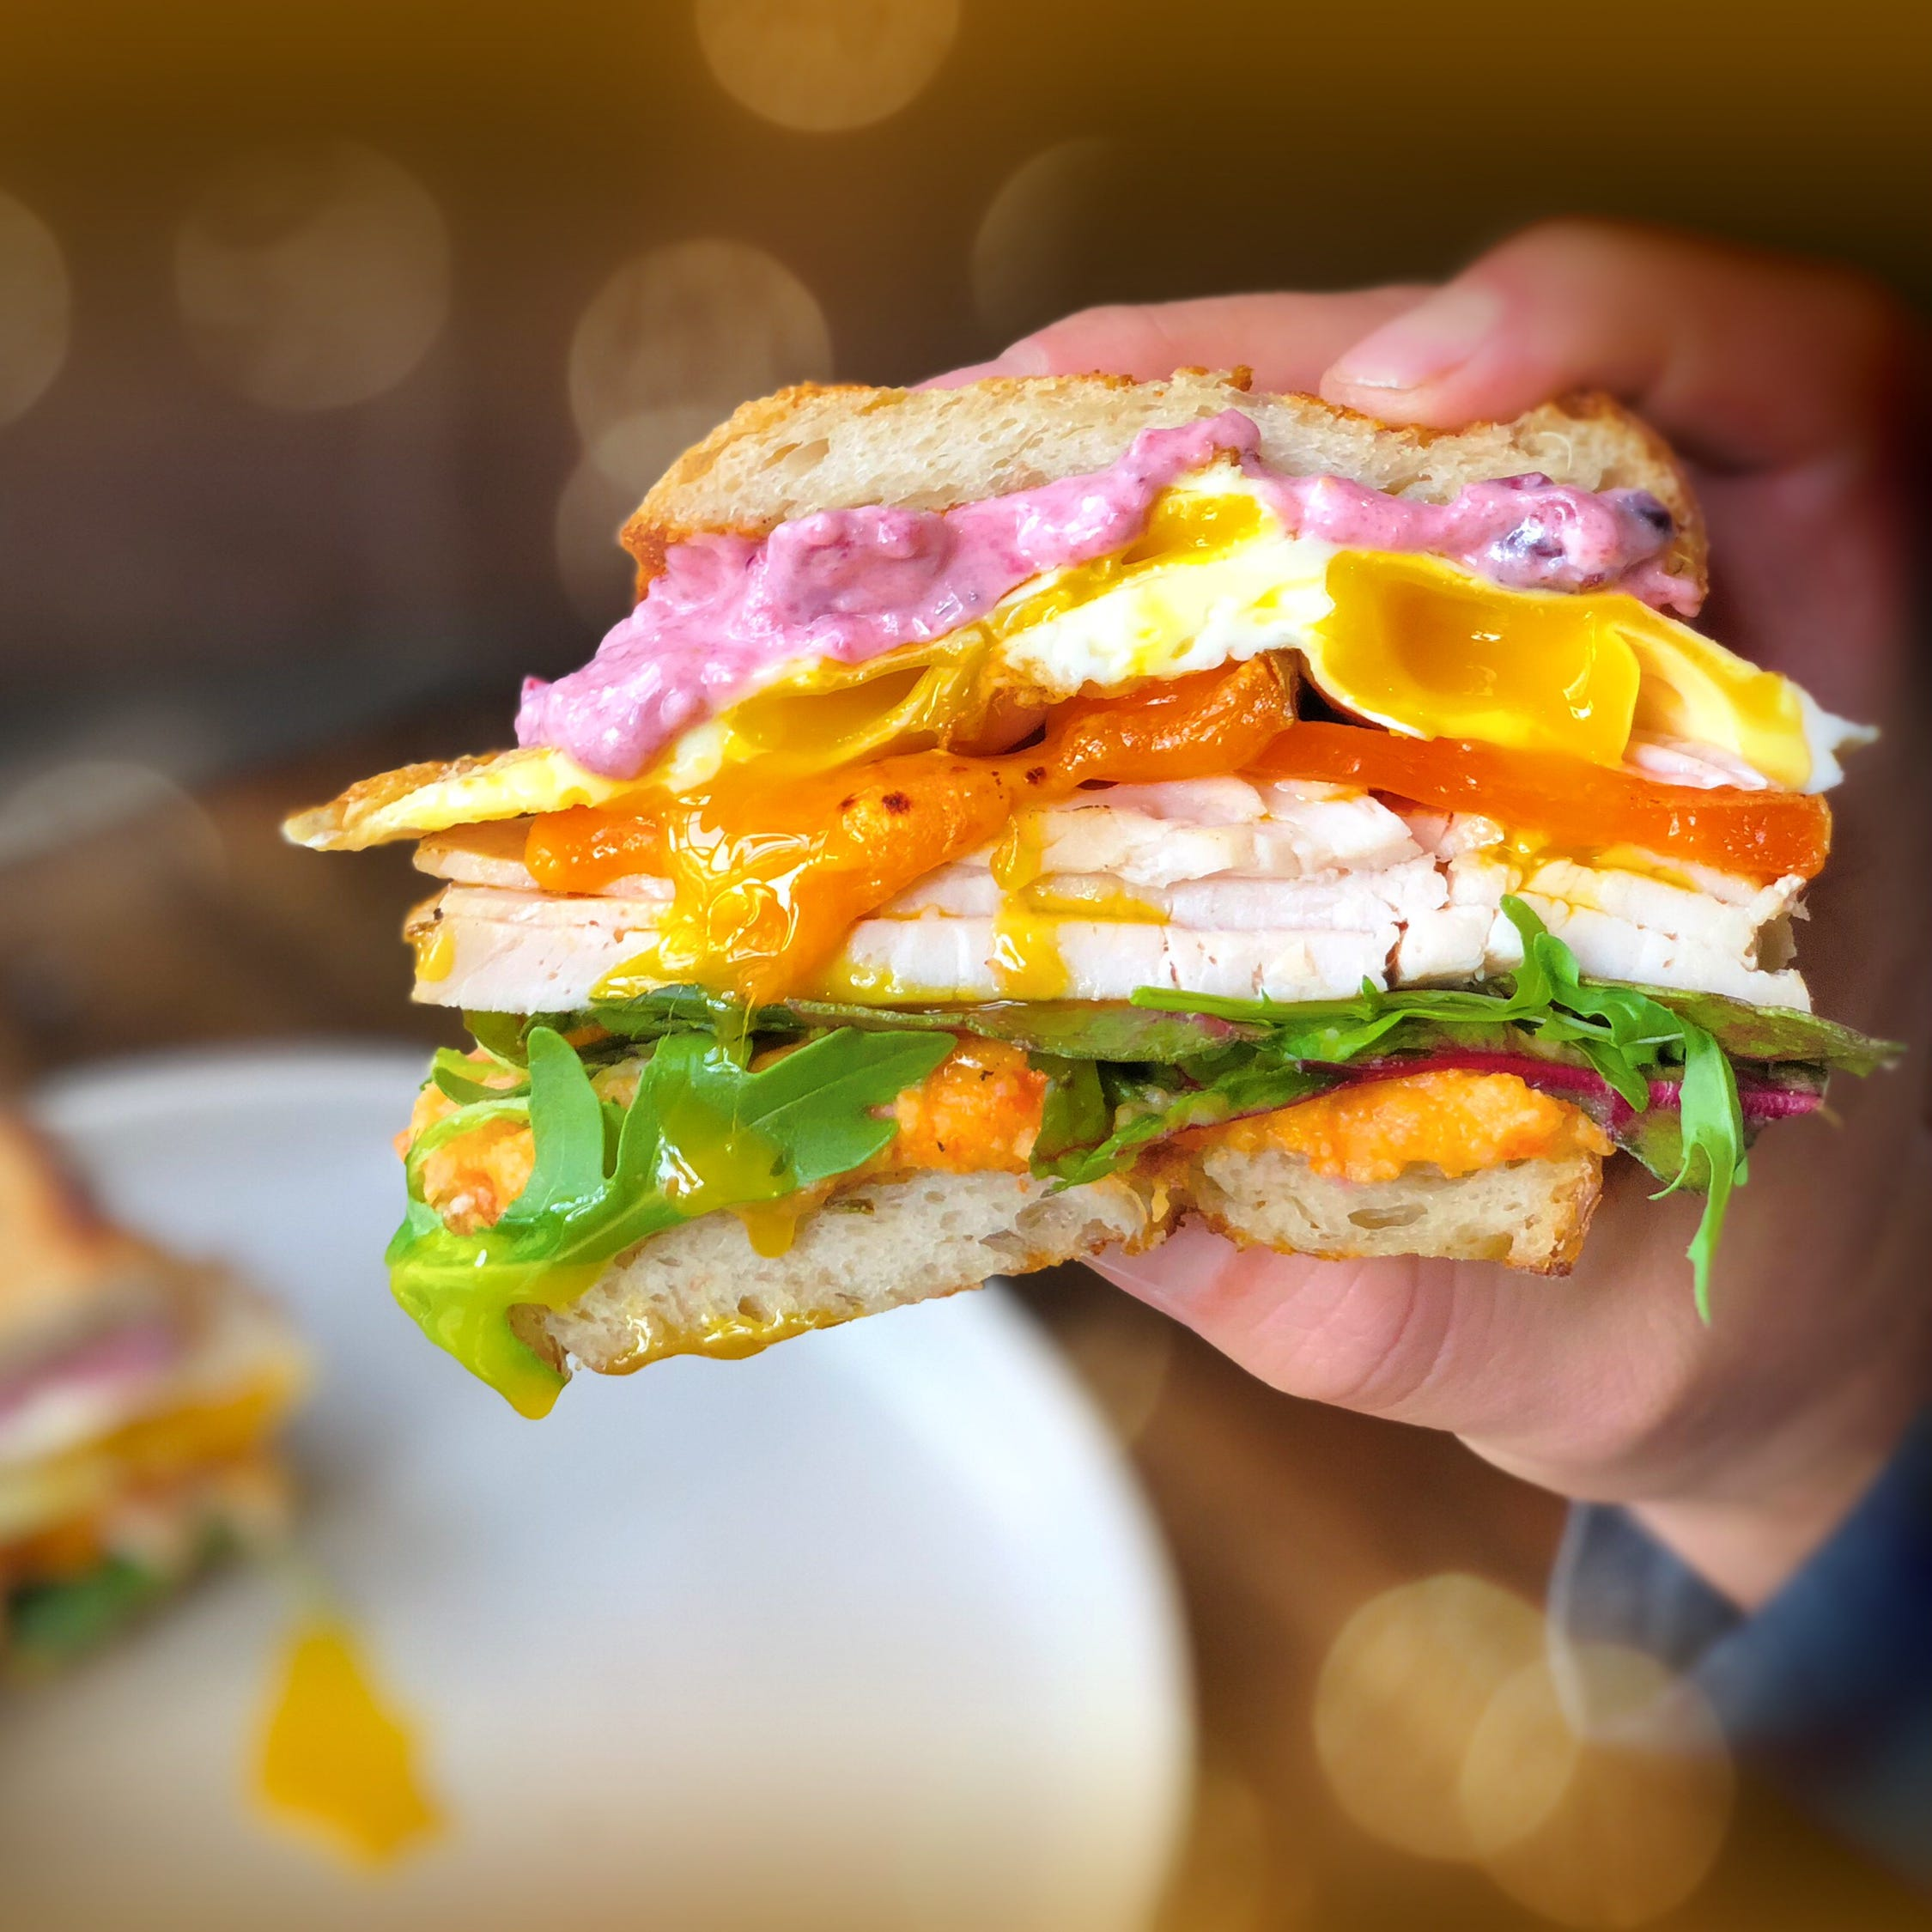 Where you see leftovers, chefs see the makings of an awesome sandwich